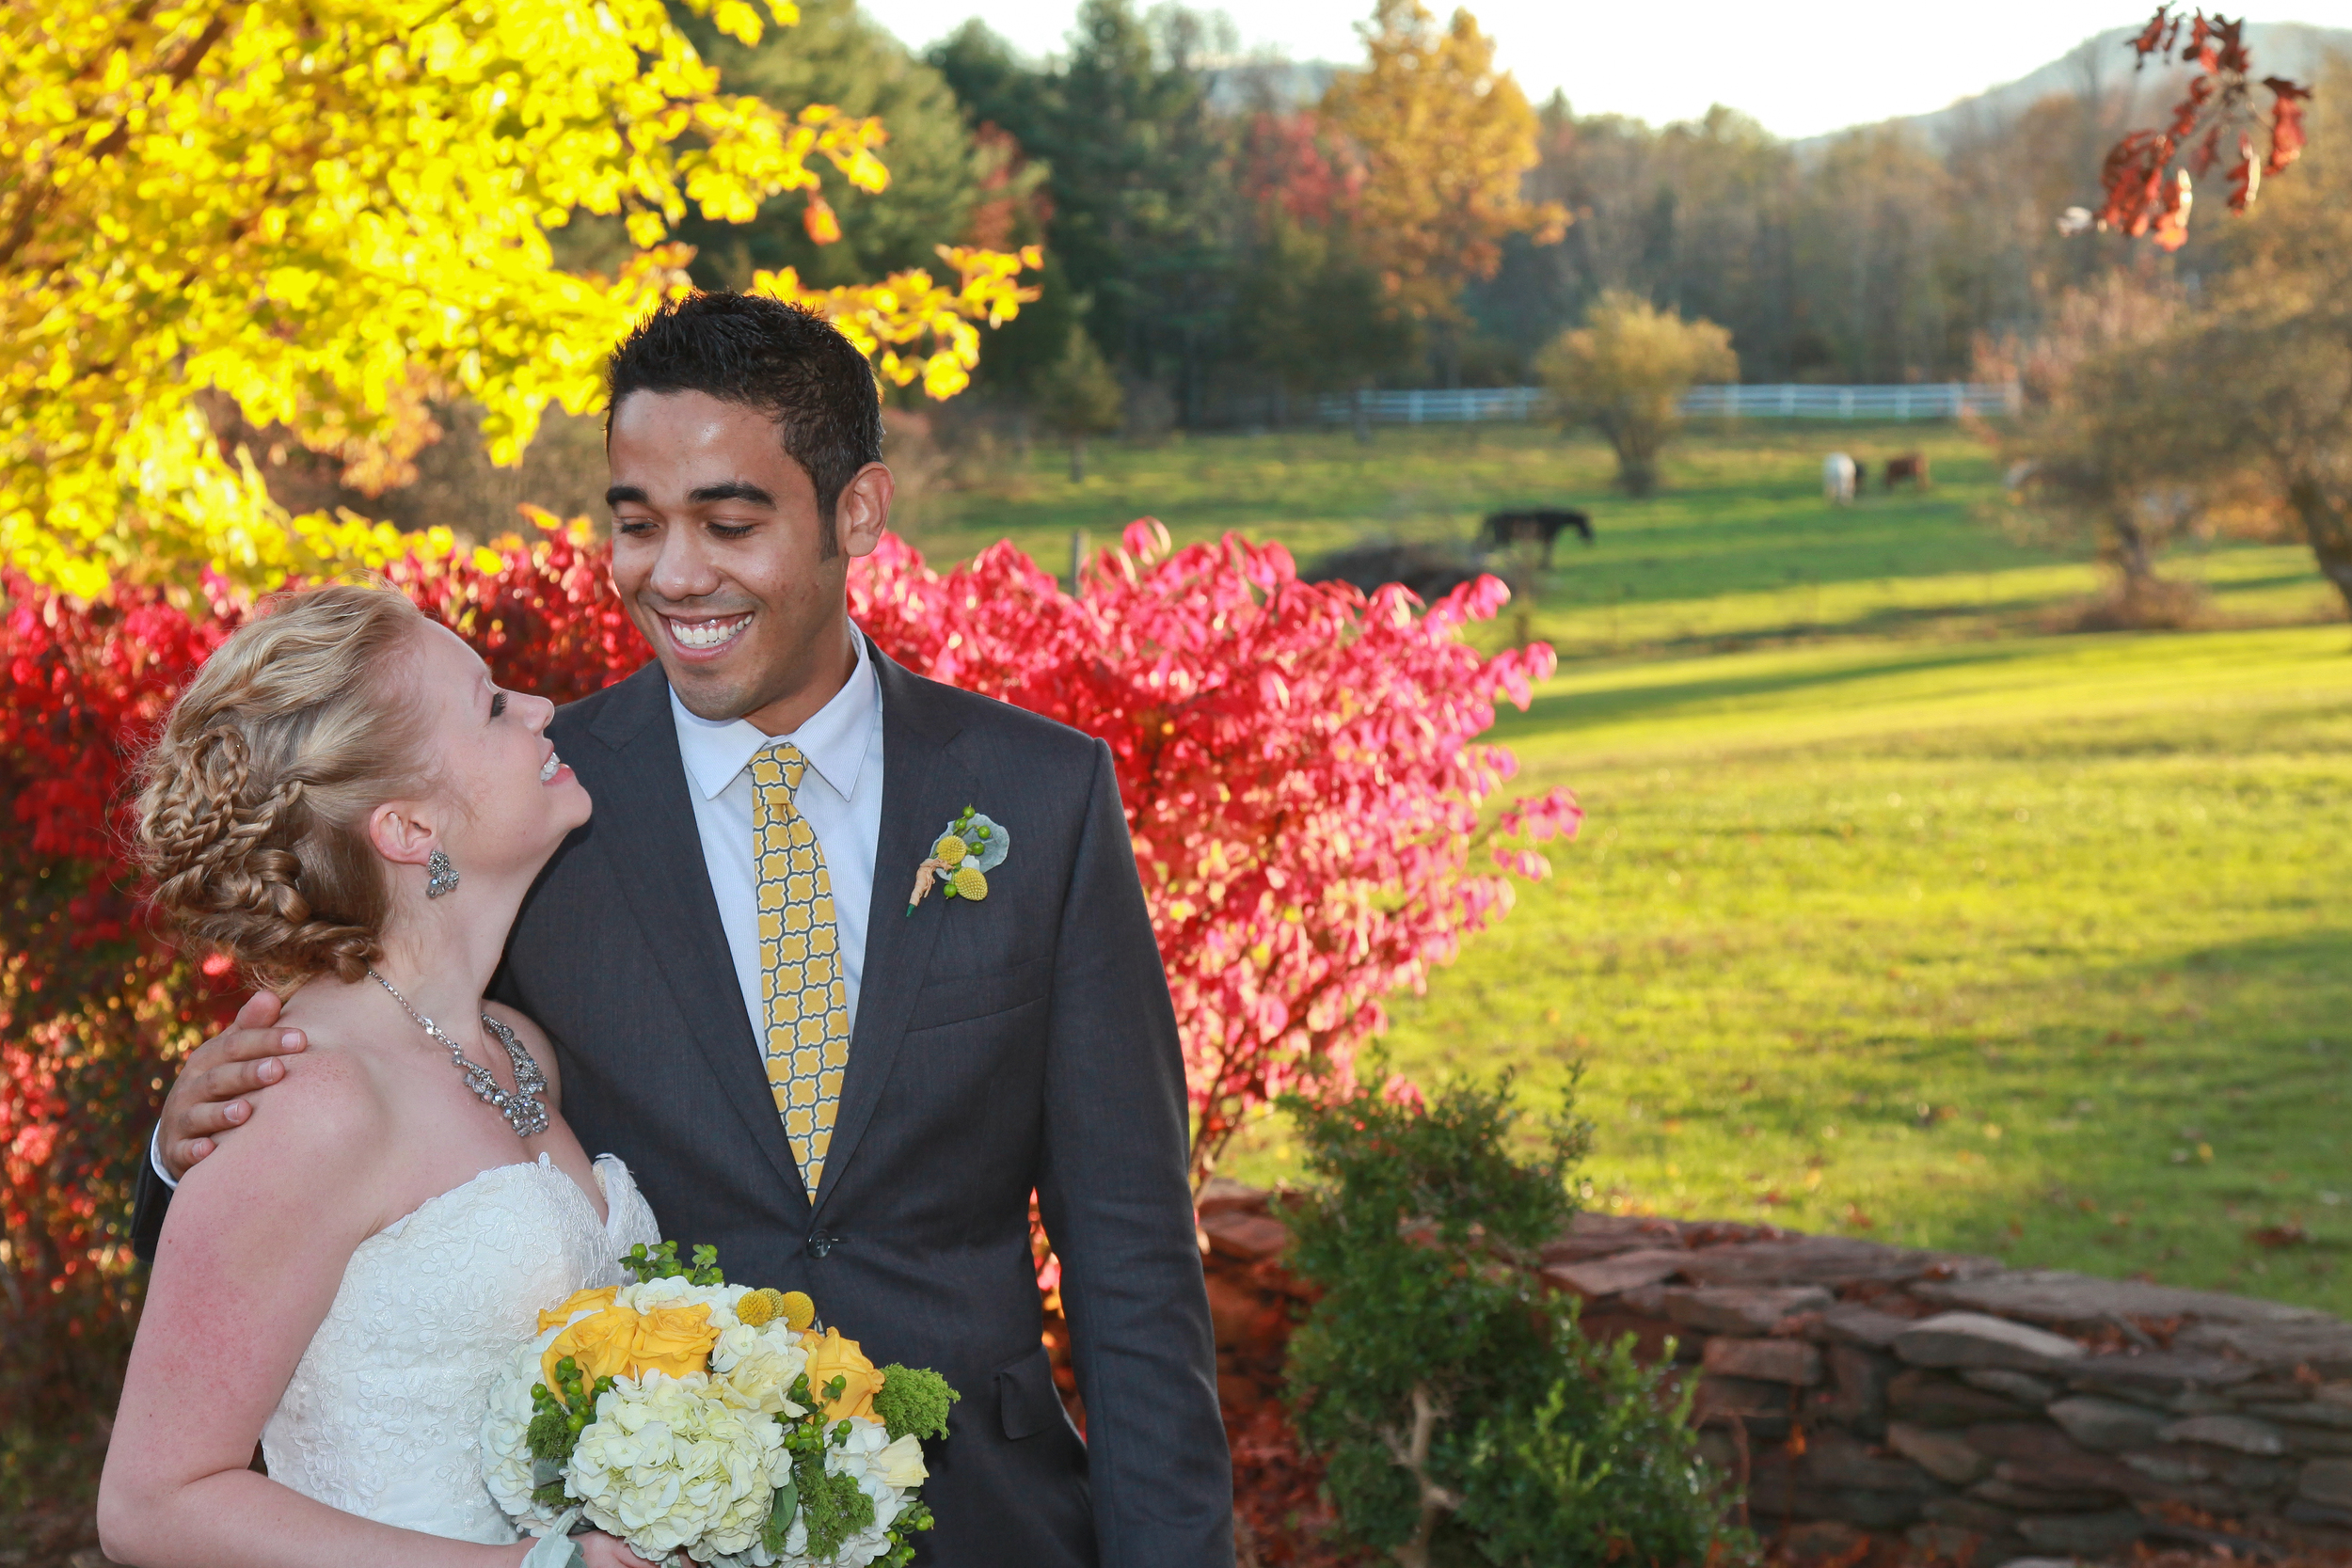 photo of bride and groom at a horse farm